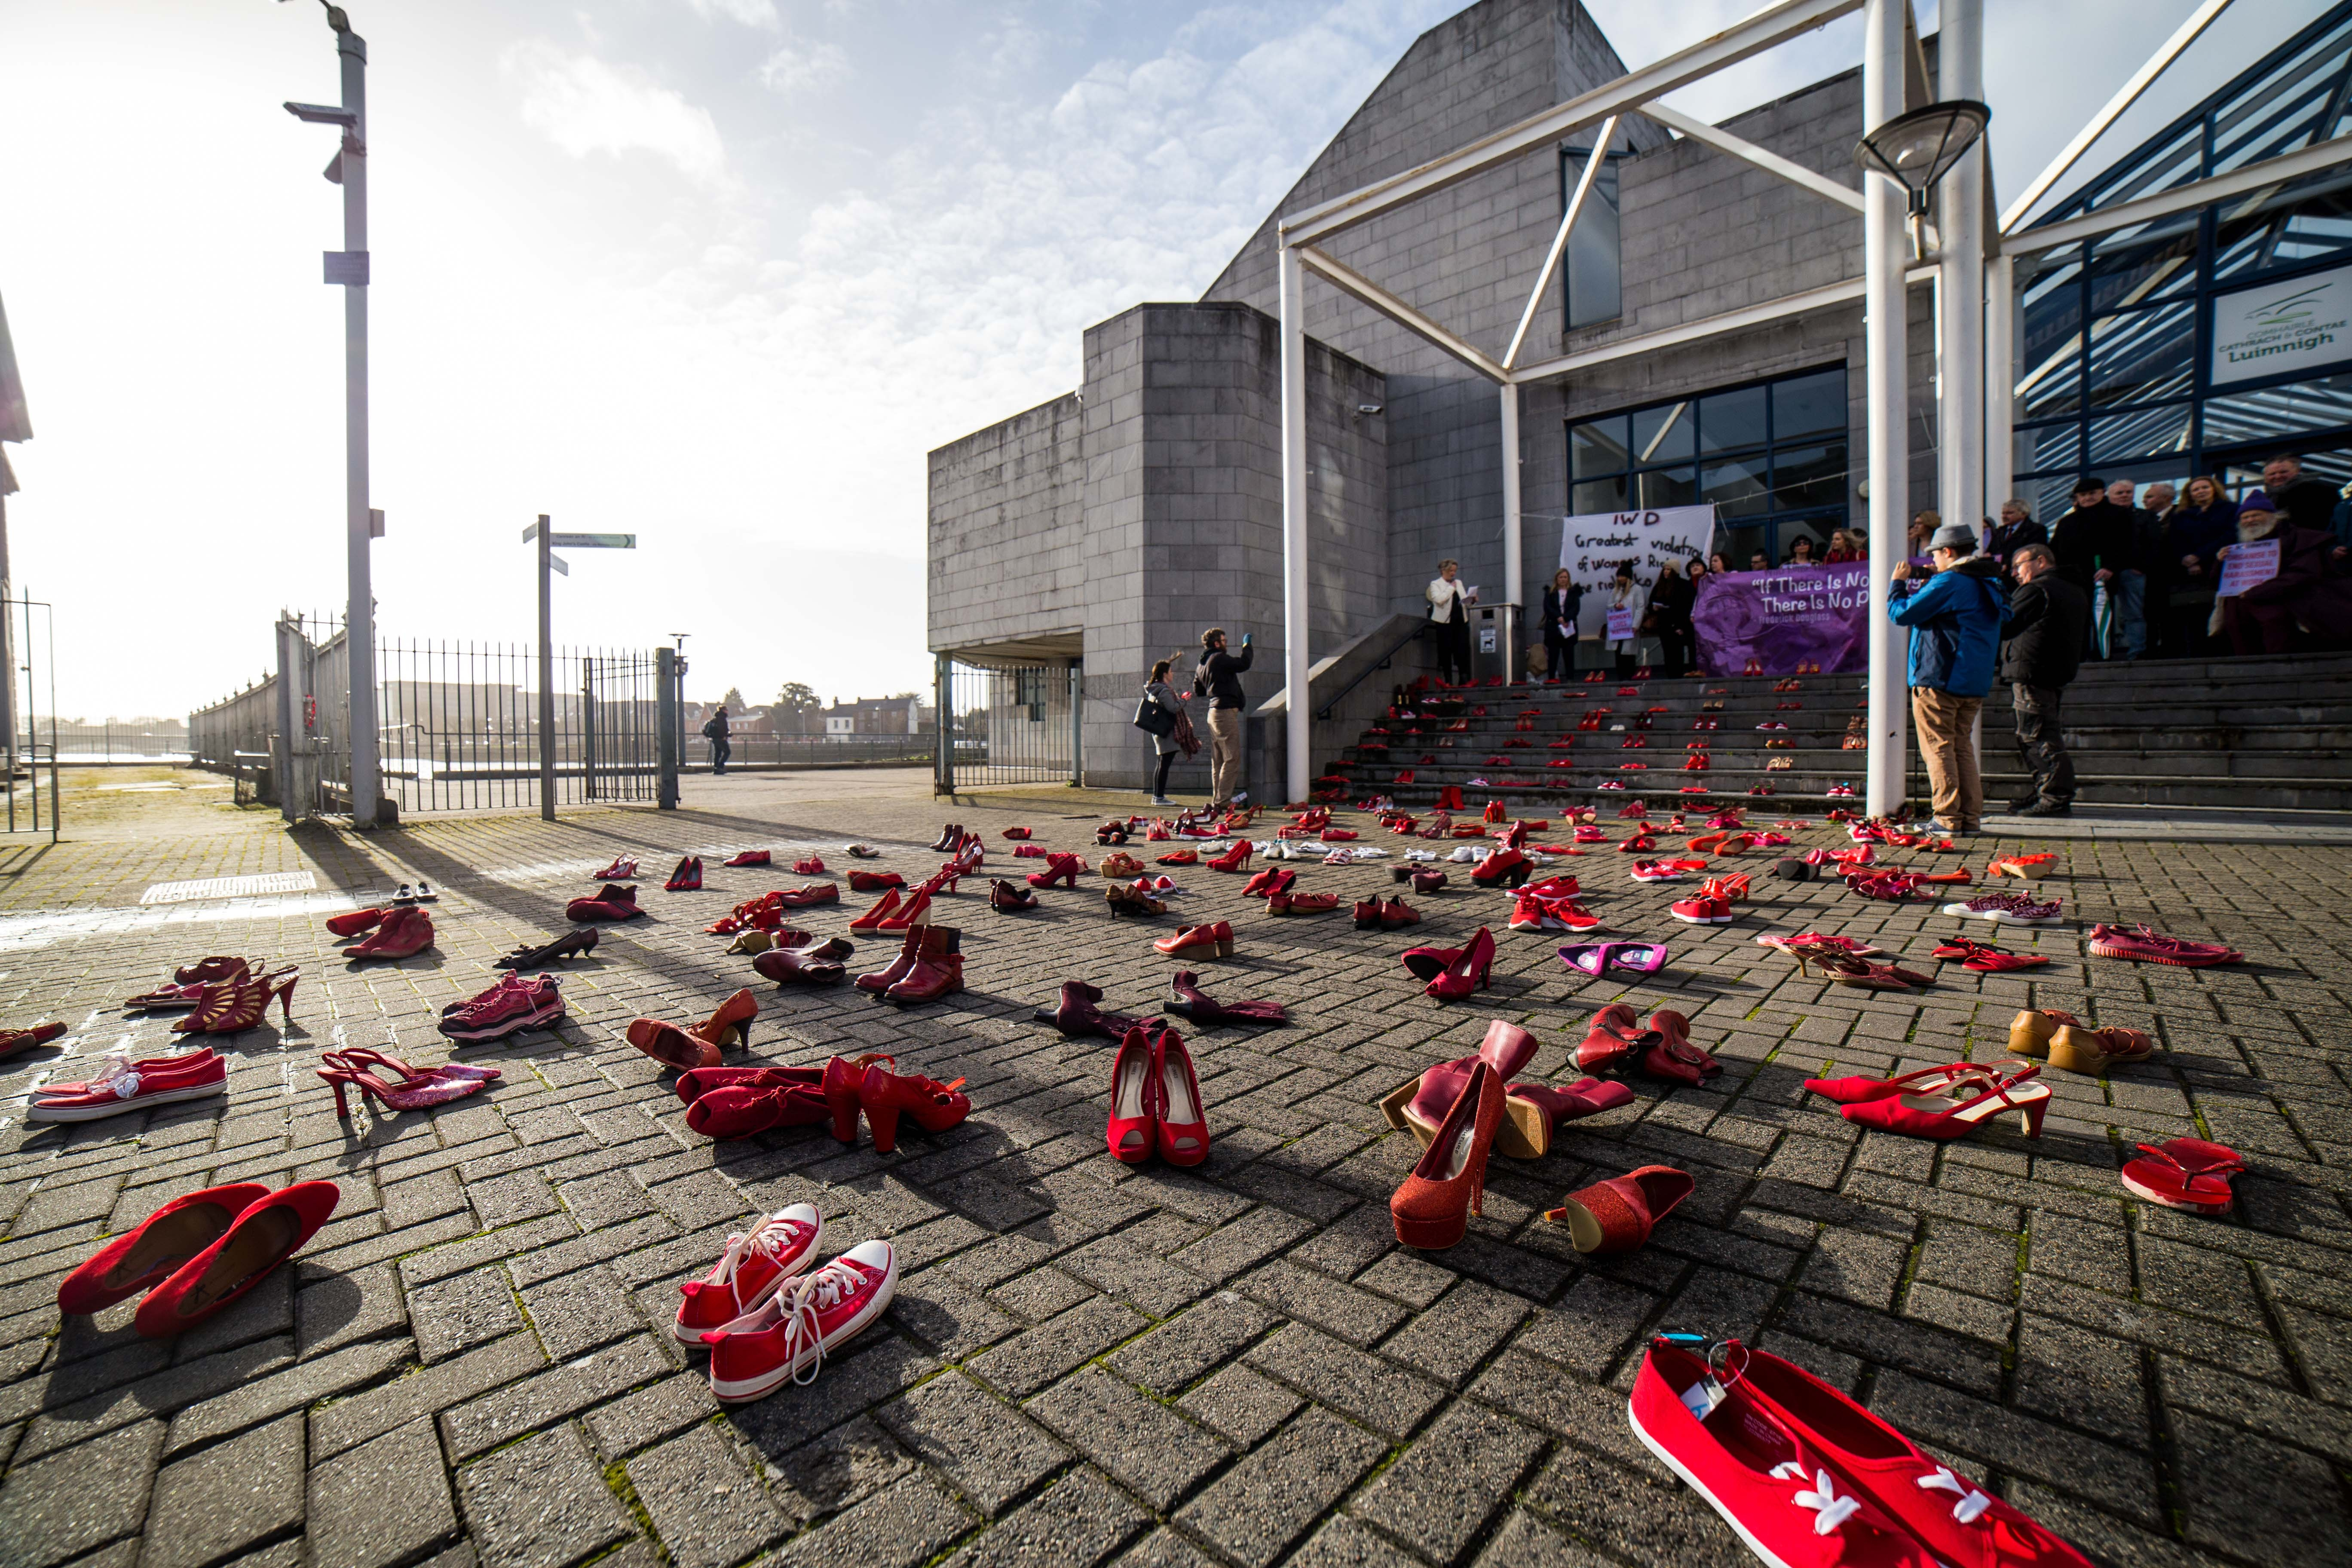 Red Shoe Demonstration On International Womens Day Highlights